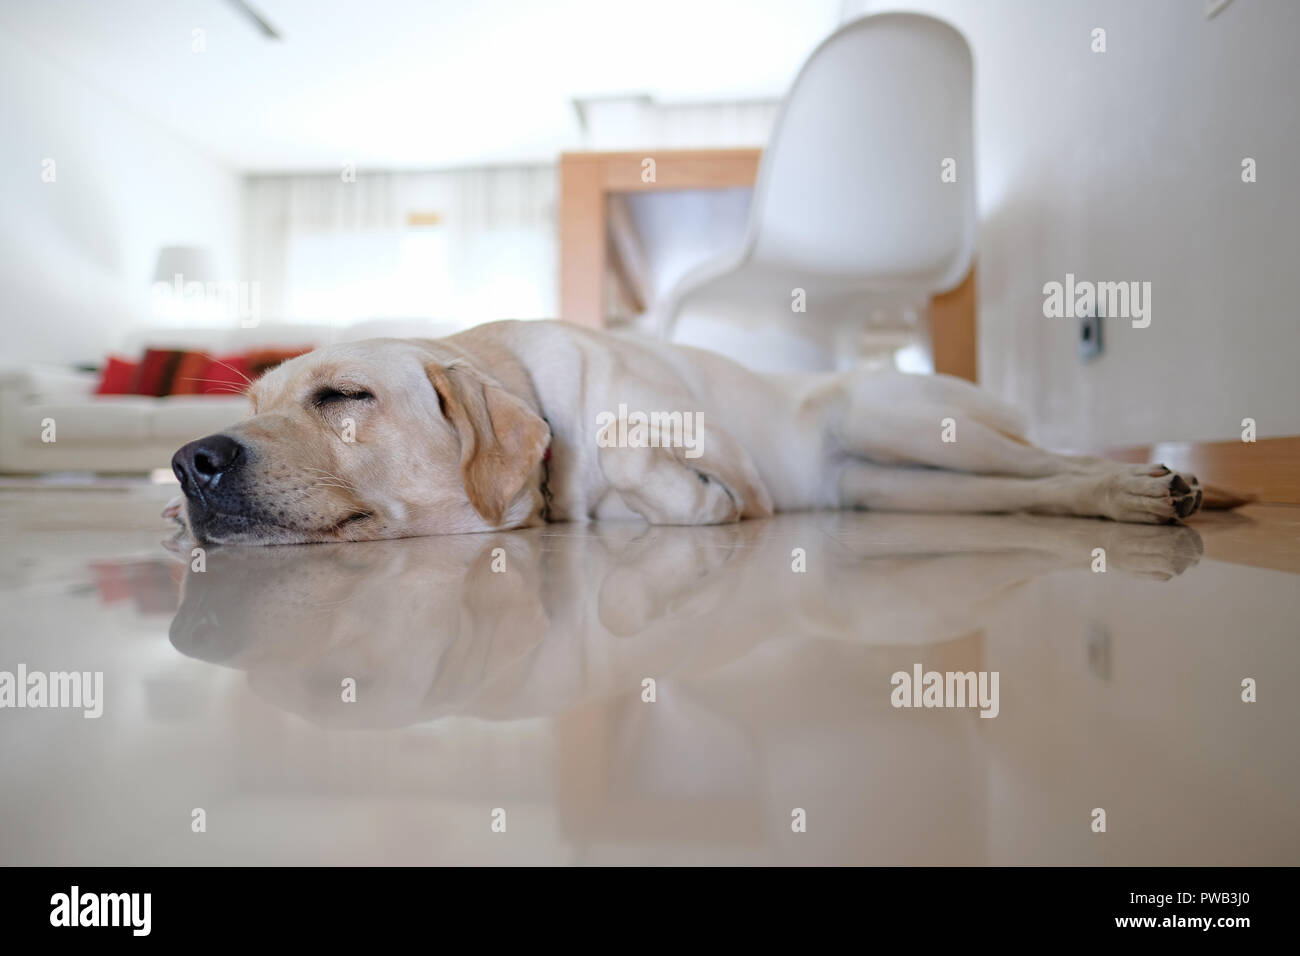 Yellow labrador retriever sleeping on the floor at home - Stock Image